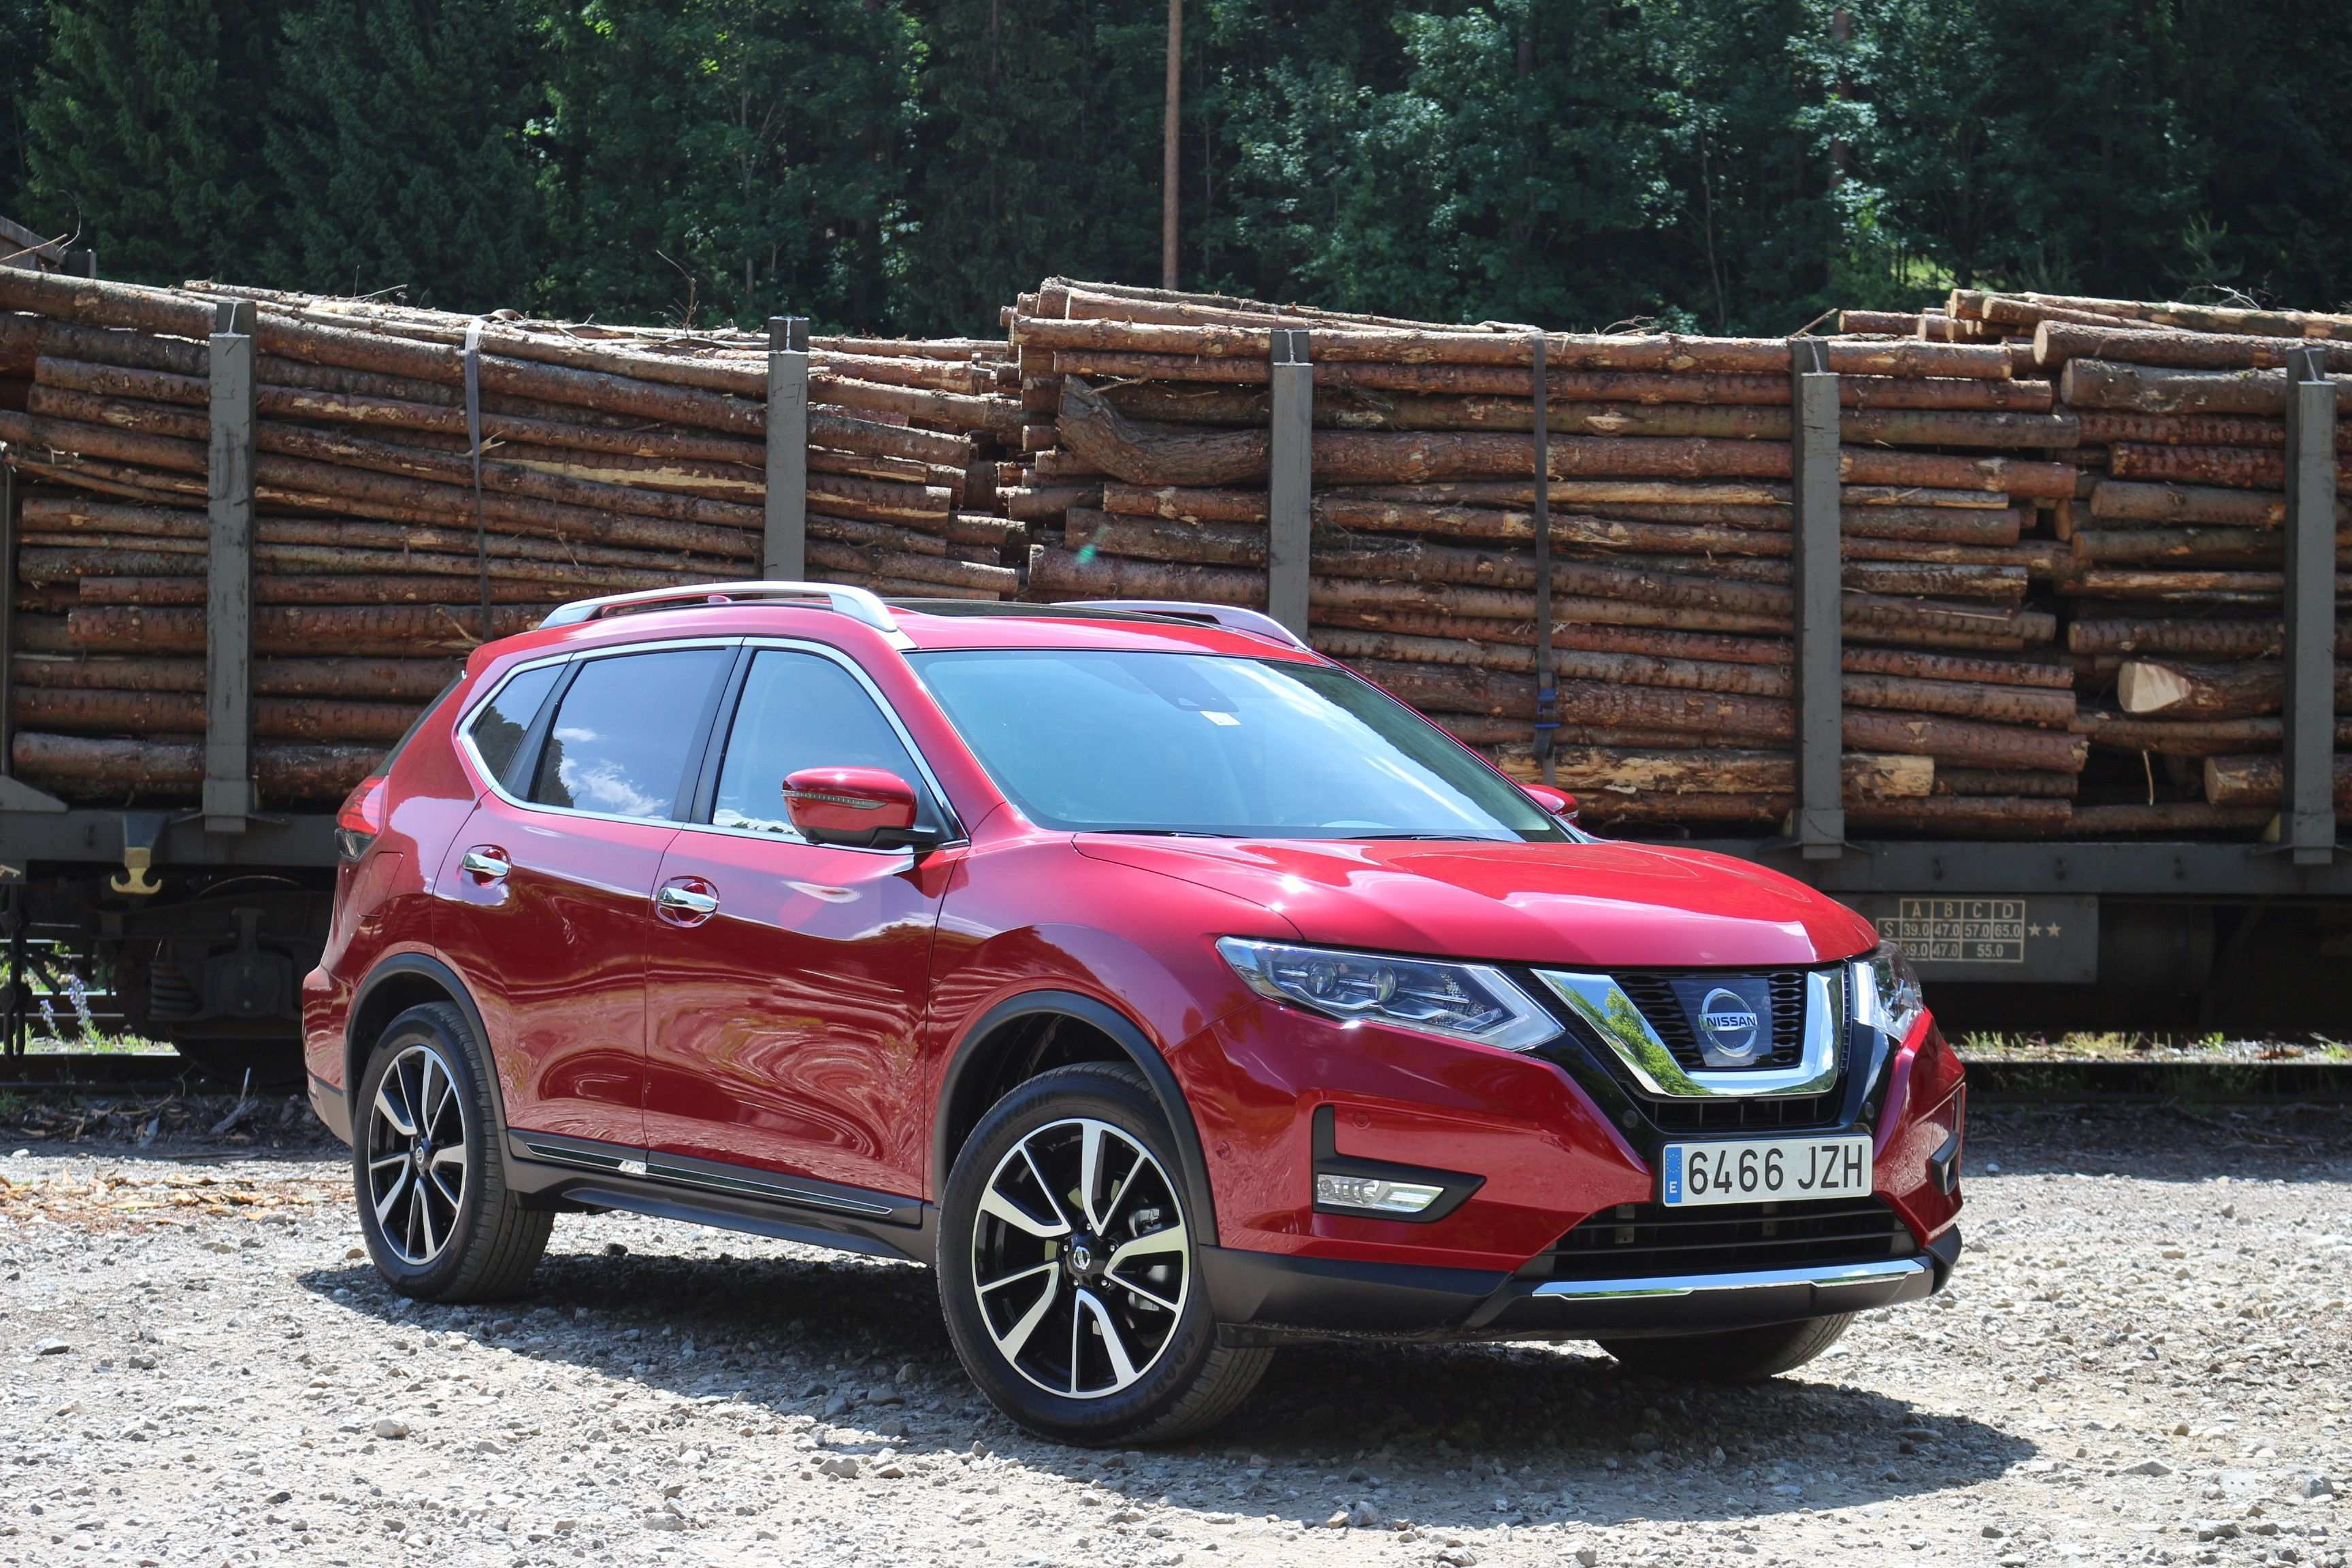 35 All New Nissan X Trail 2019 Review Rumors with Nissan X Trail 2019 Review